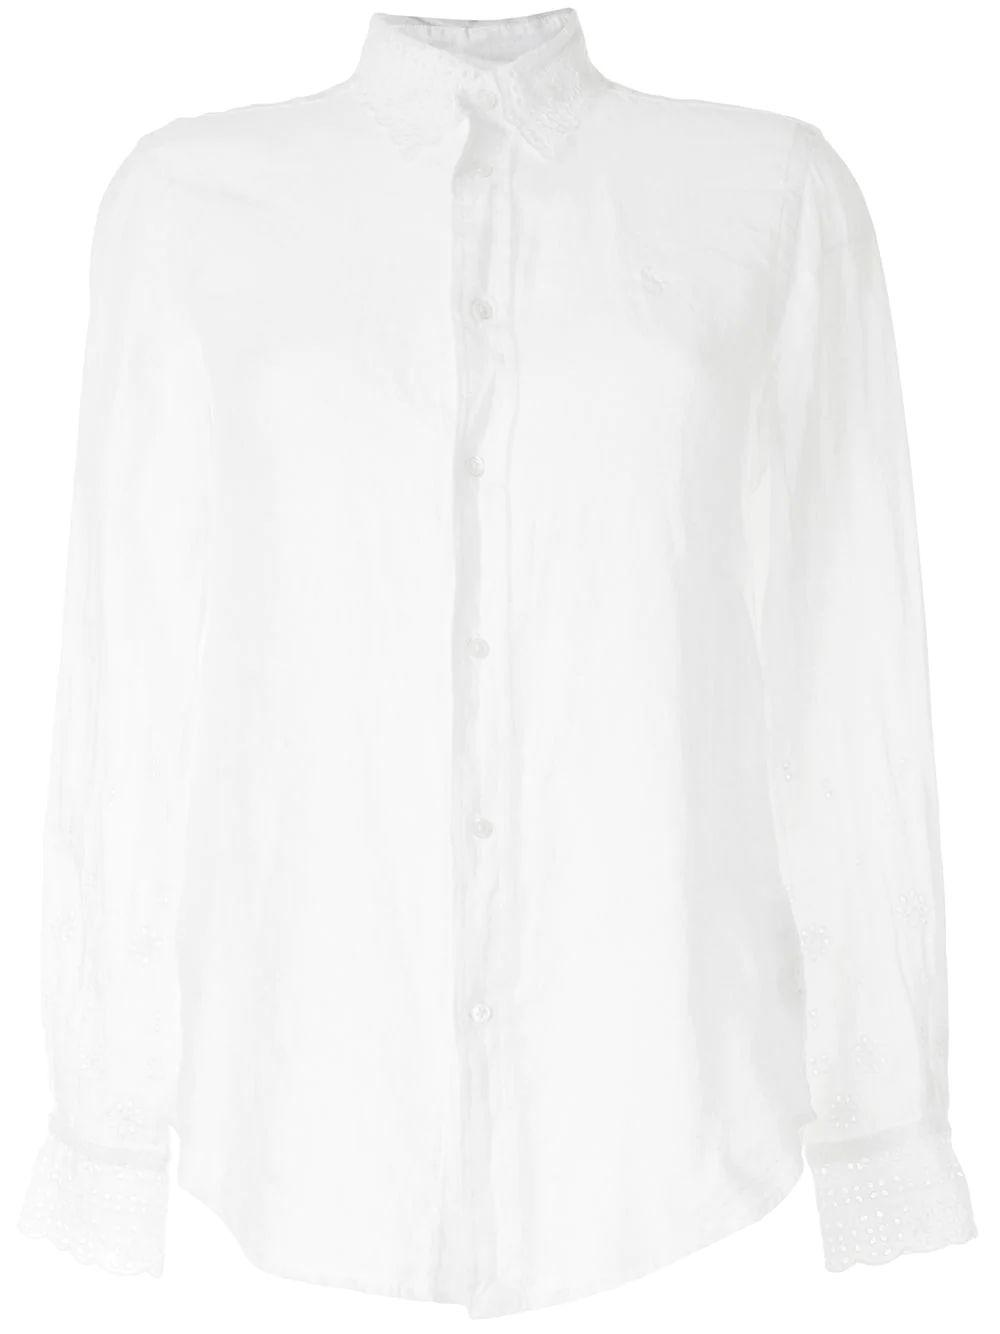 Georgia Button Down Shirt